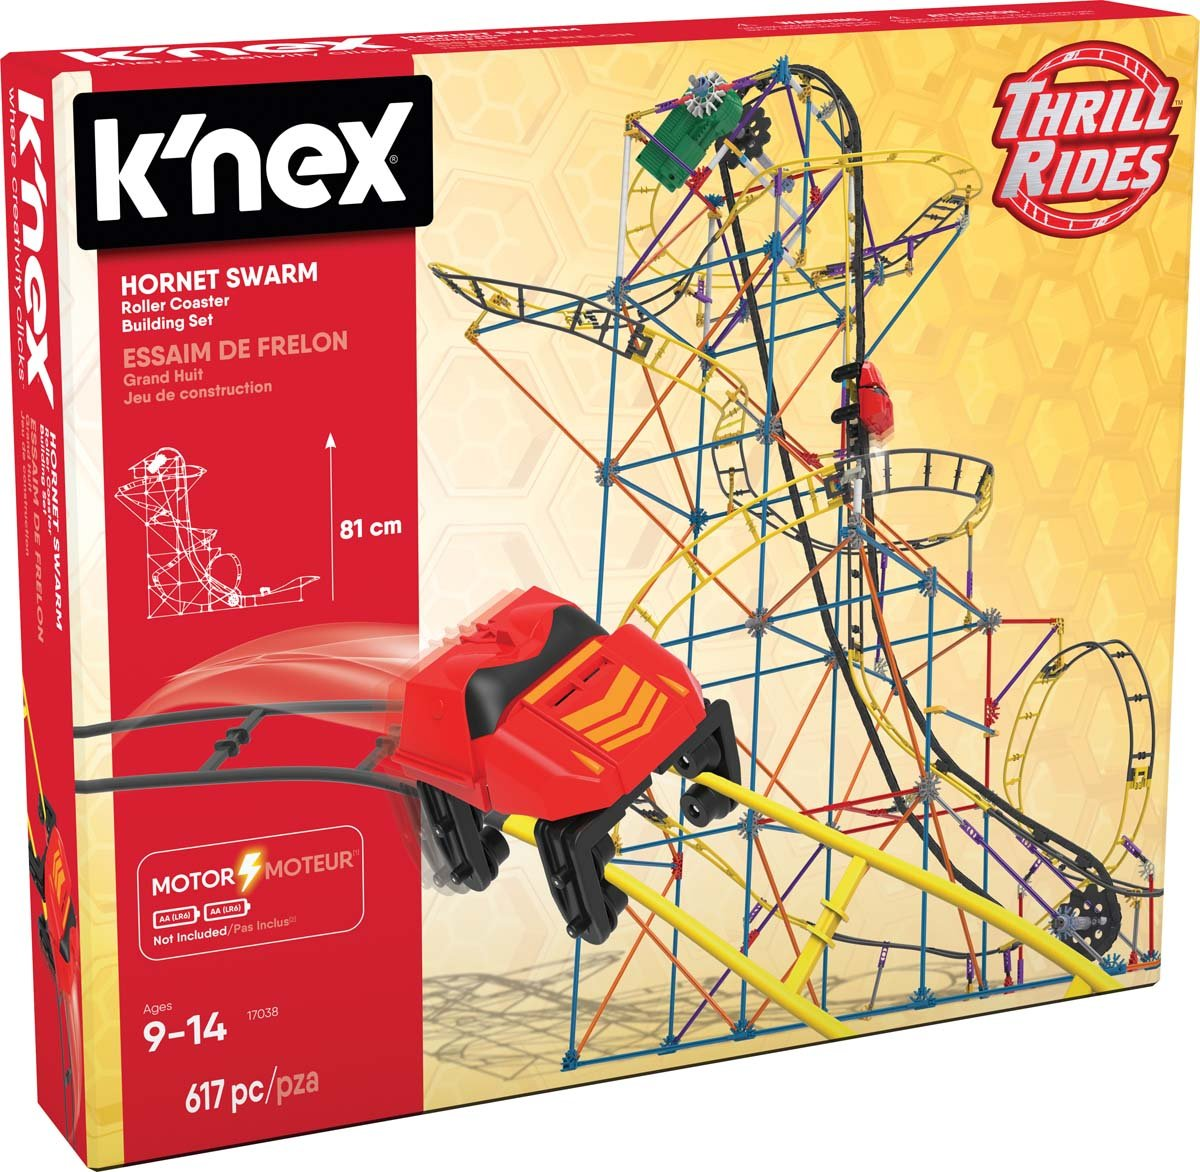 K Nex Thrill Rides Hornet Swarm Roller Coaster Building Set 744476170385